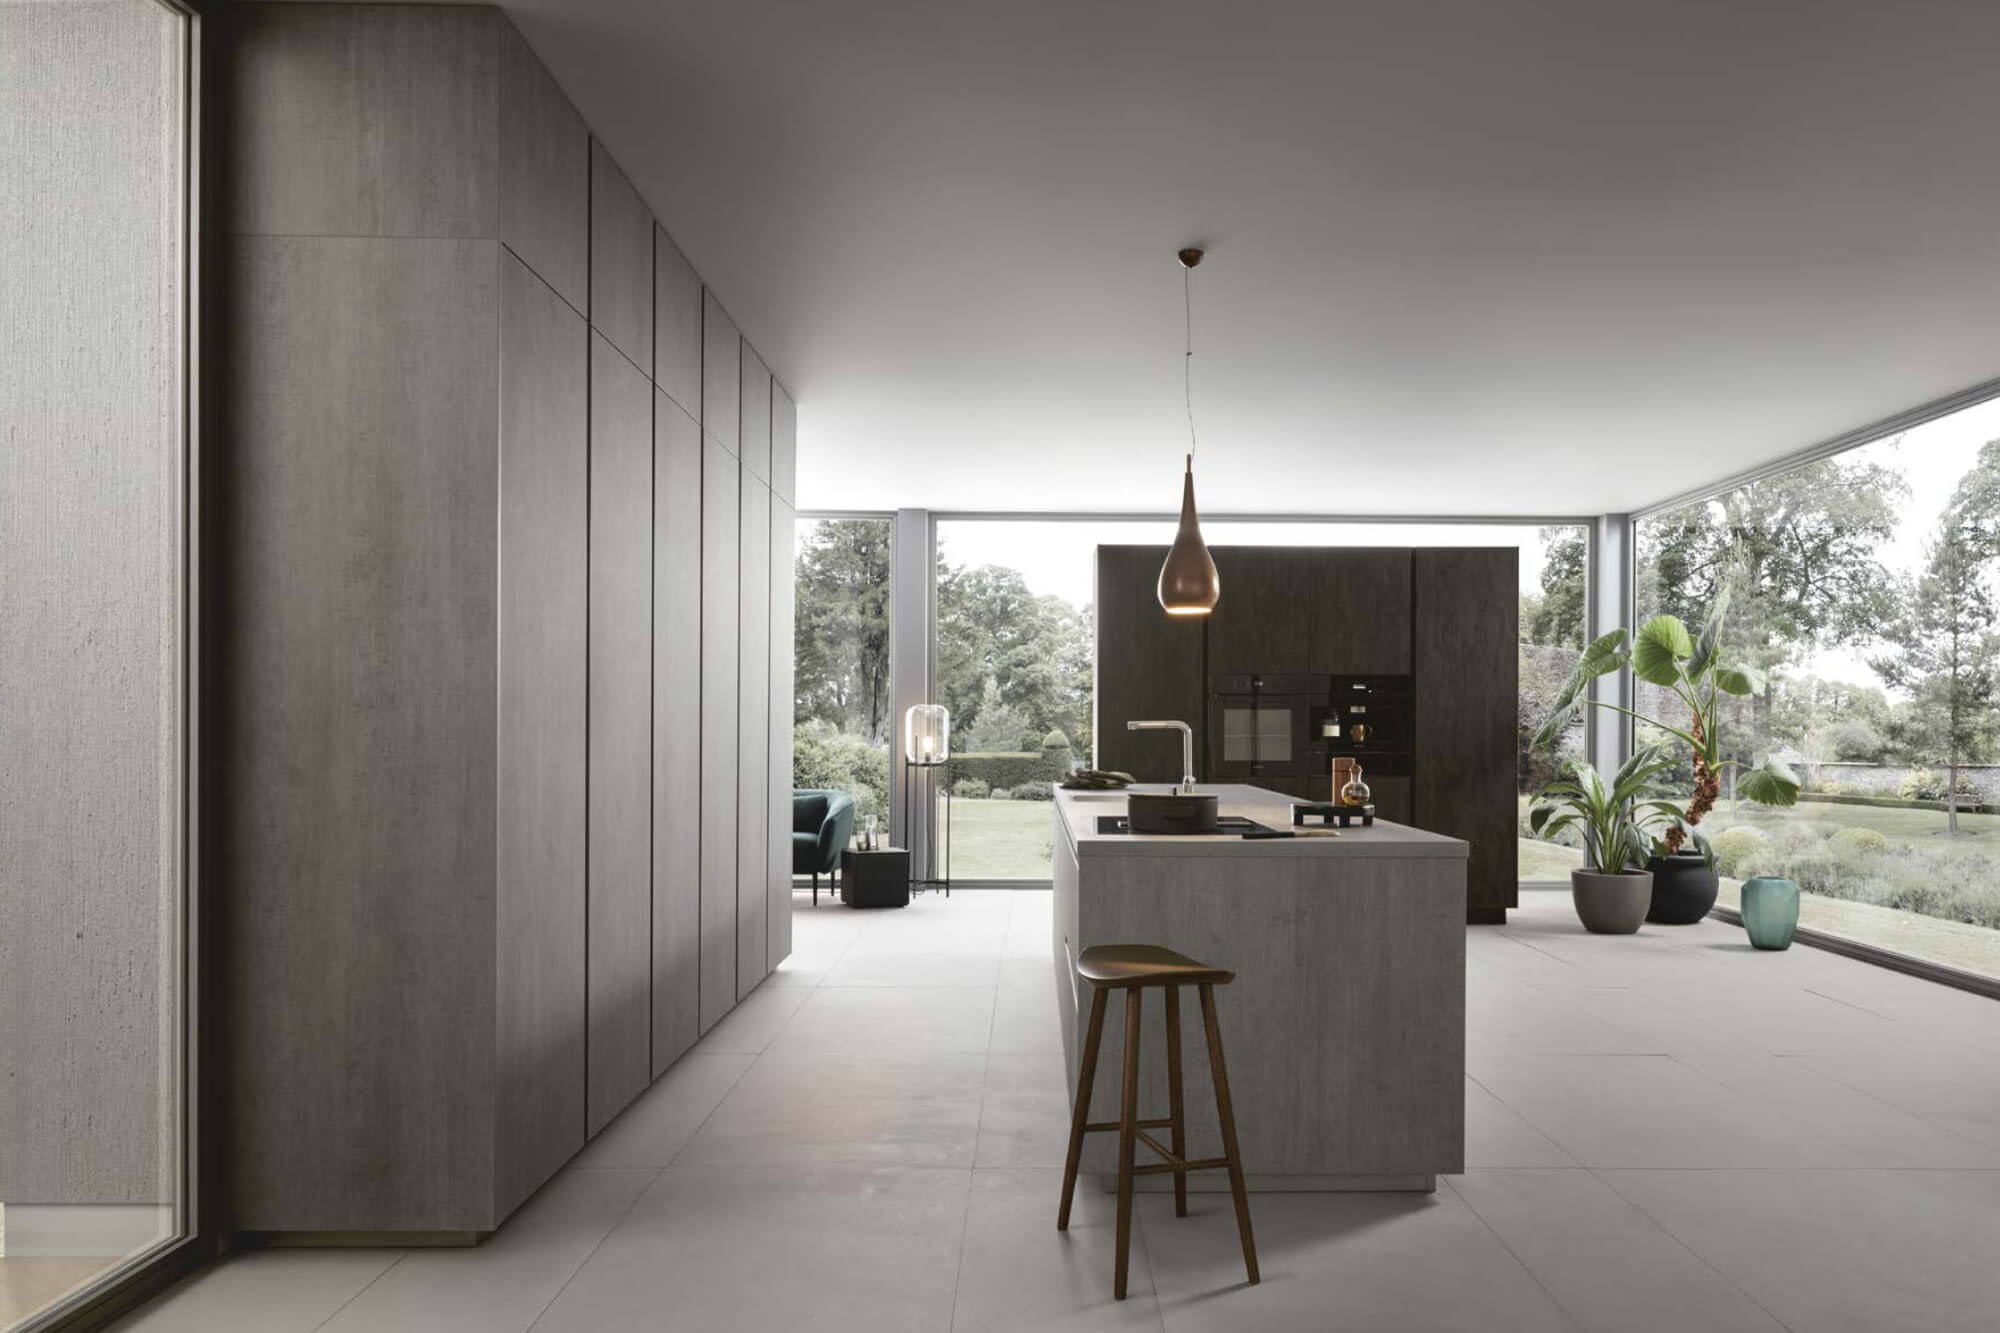 Light Concrete Reproduction Island Kitchen